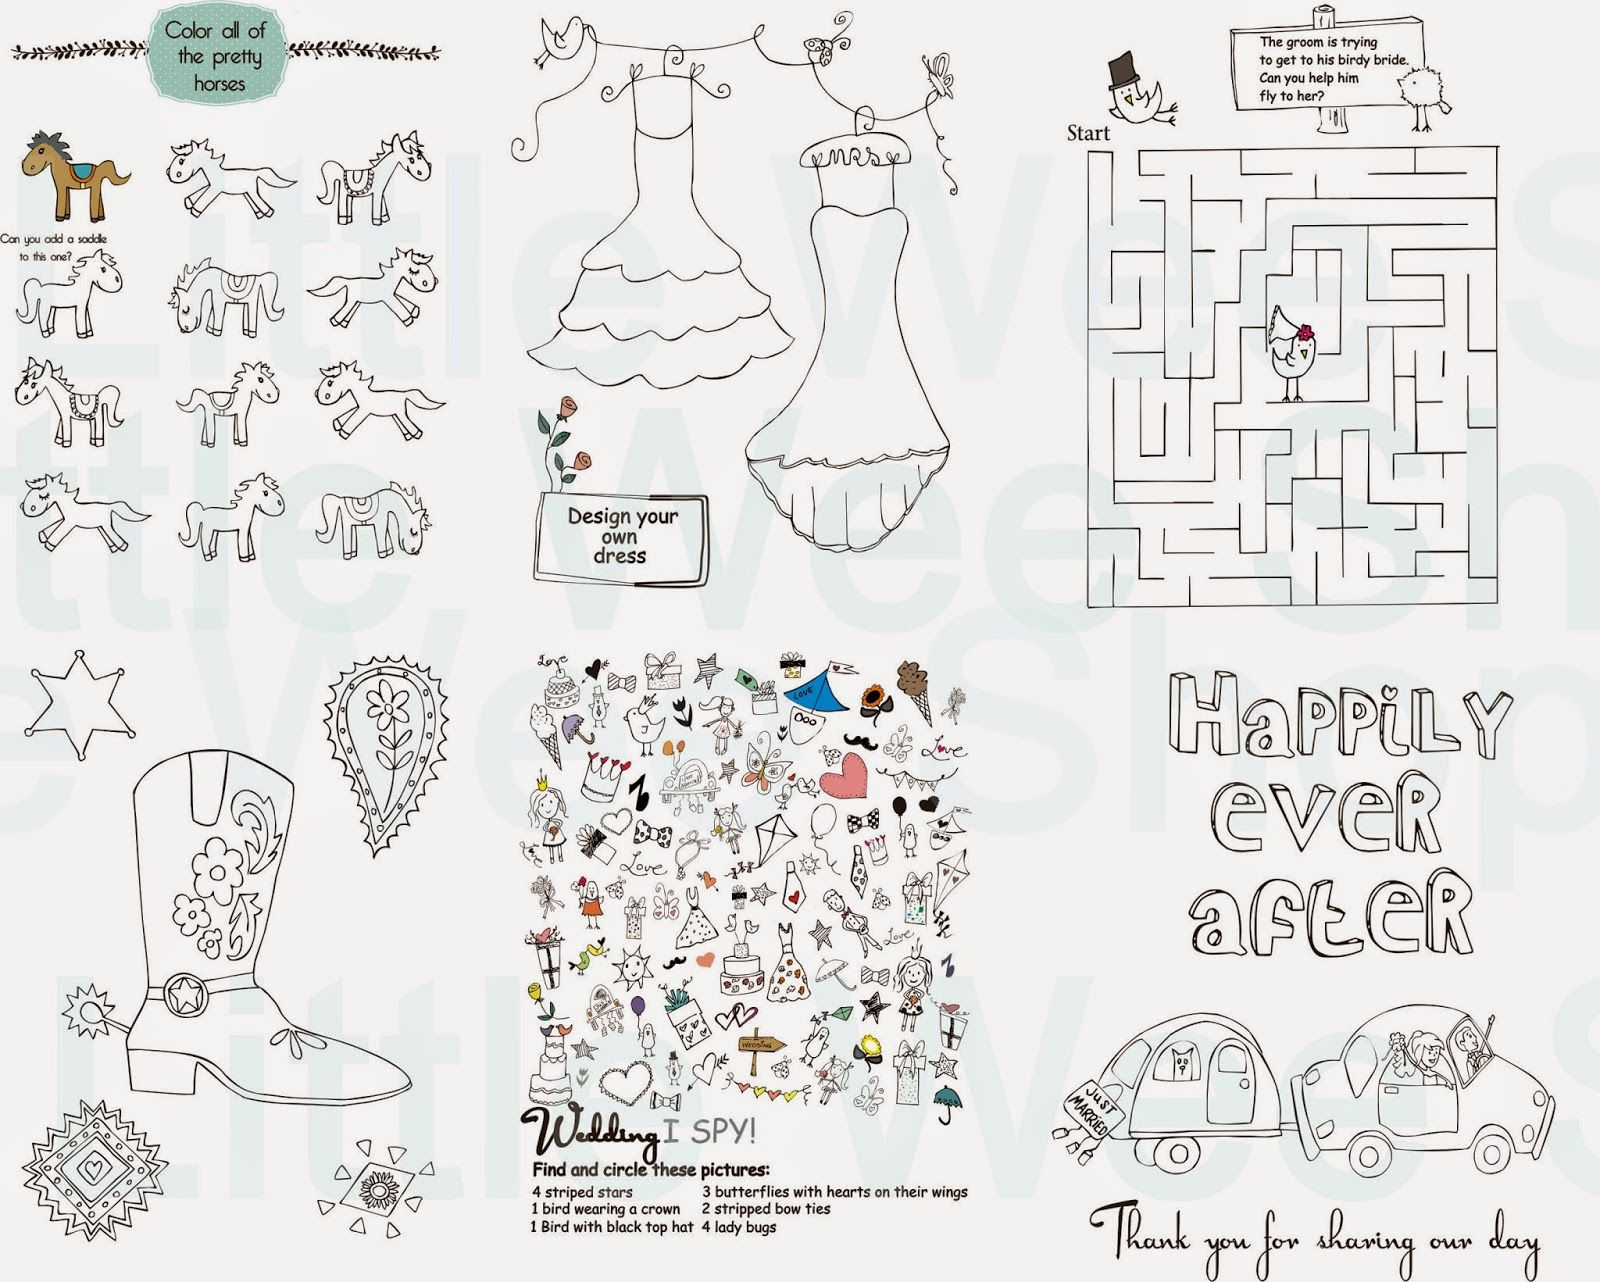 Wedding coloring book activities - Wedding Coloring Activity Books For Kids Wedding Favors For Kids Wedding Coloring Book